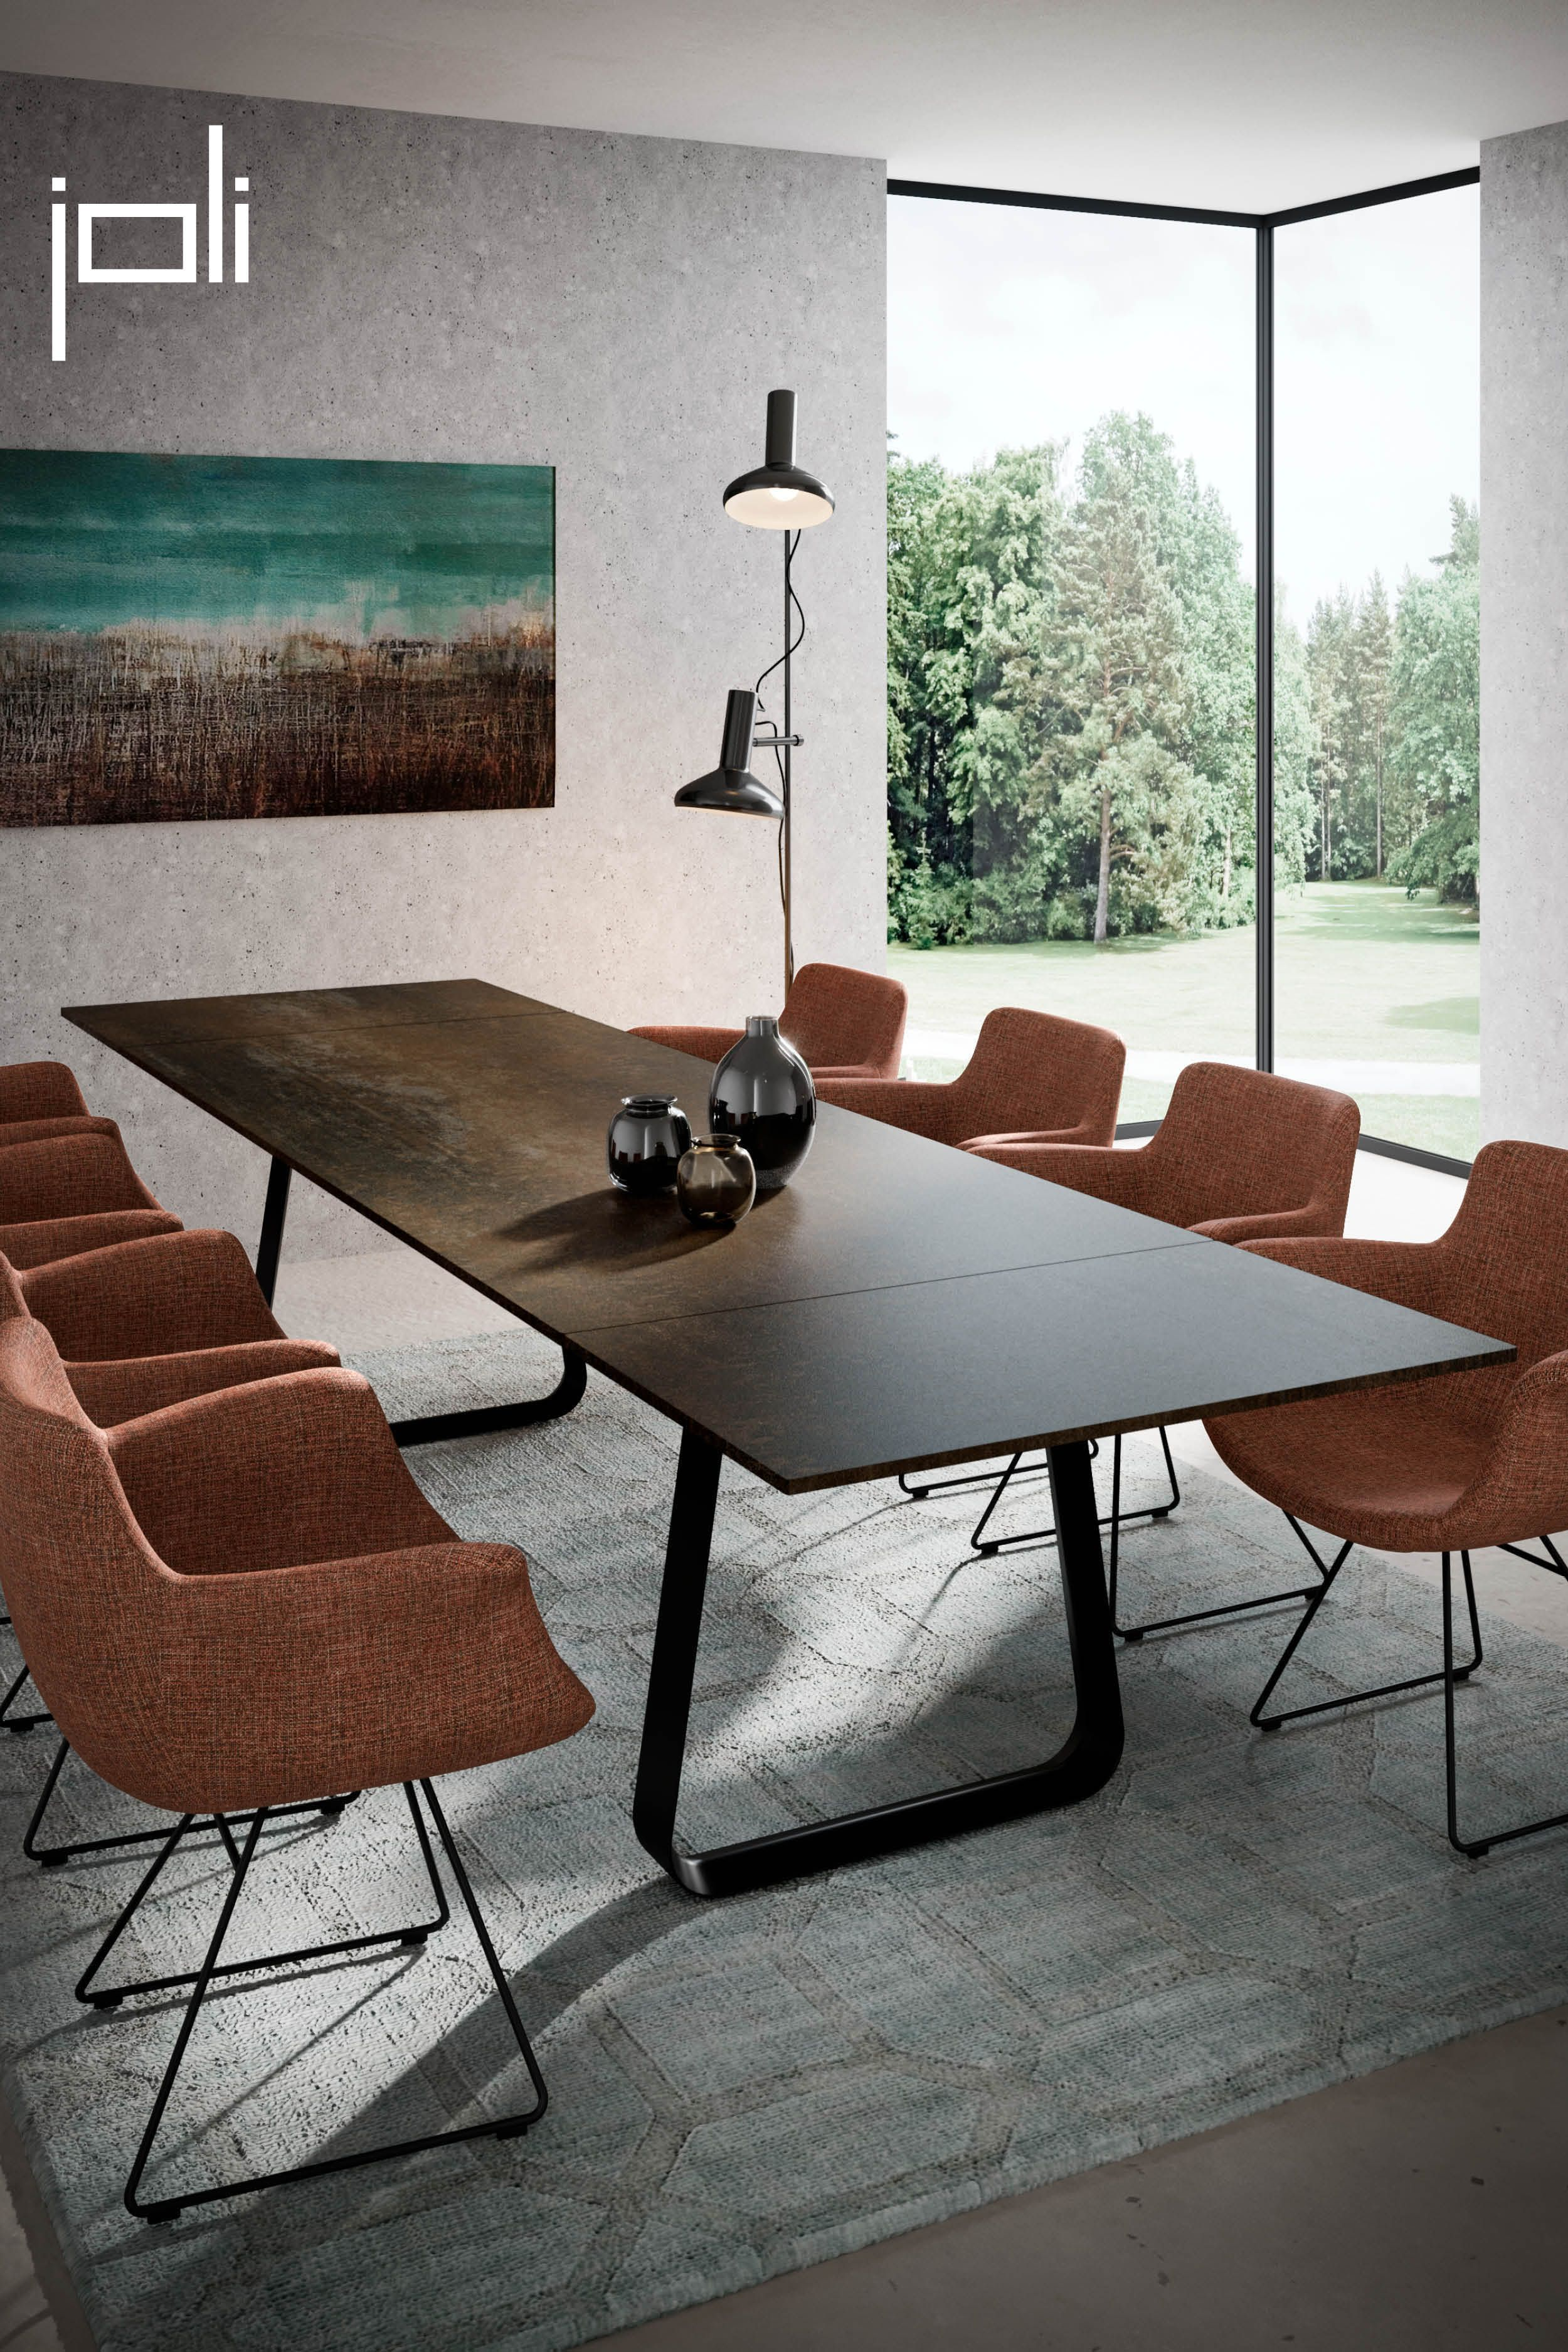 This beautiful Curve table is easy to make bigger. So it never matters if more people stay to eat! #diningtable #extendabletable #table #designtable #chairs #designchairs #comfortablechairs